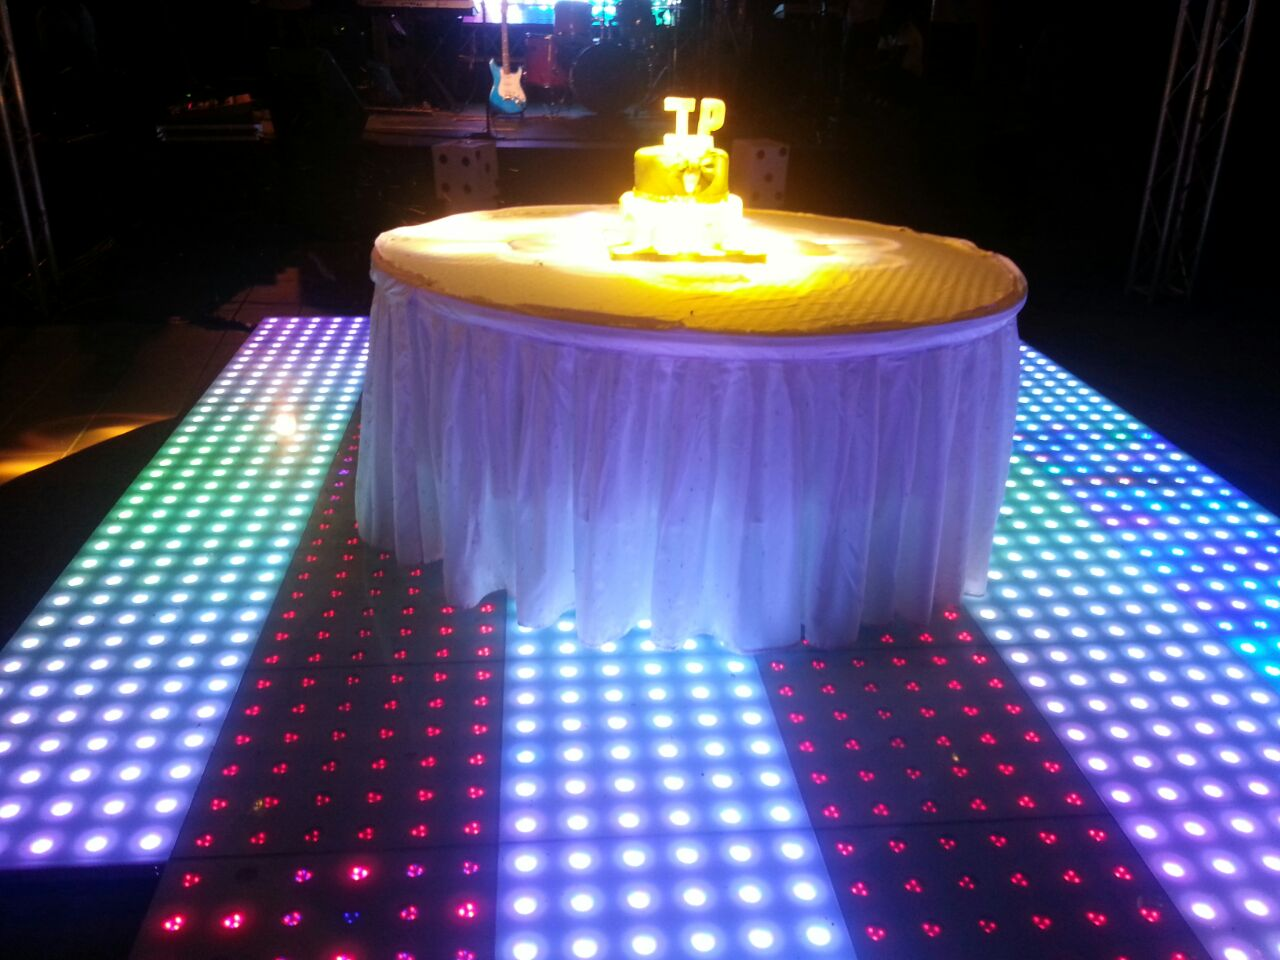 Lights, camera, action. The cake was definitely eye catching